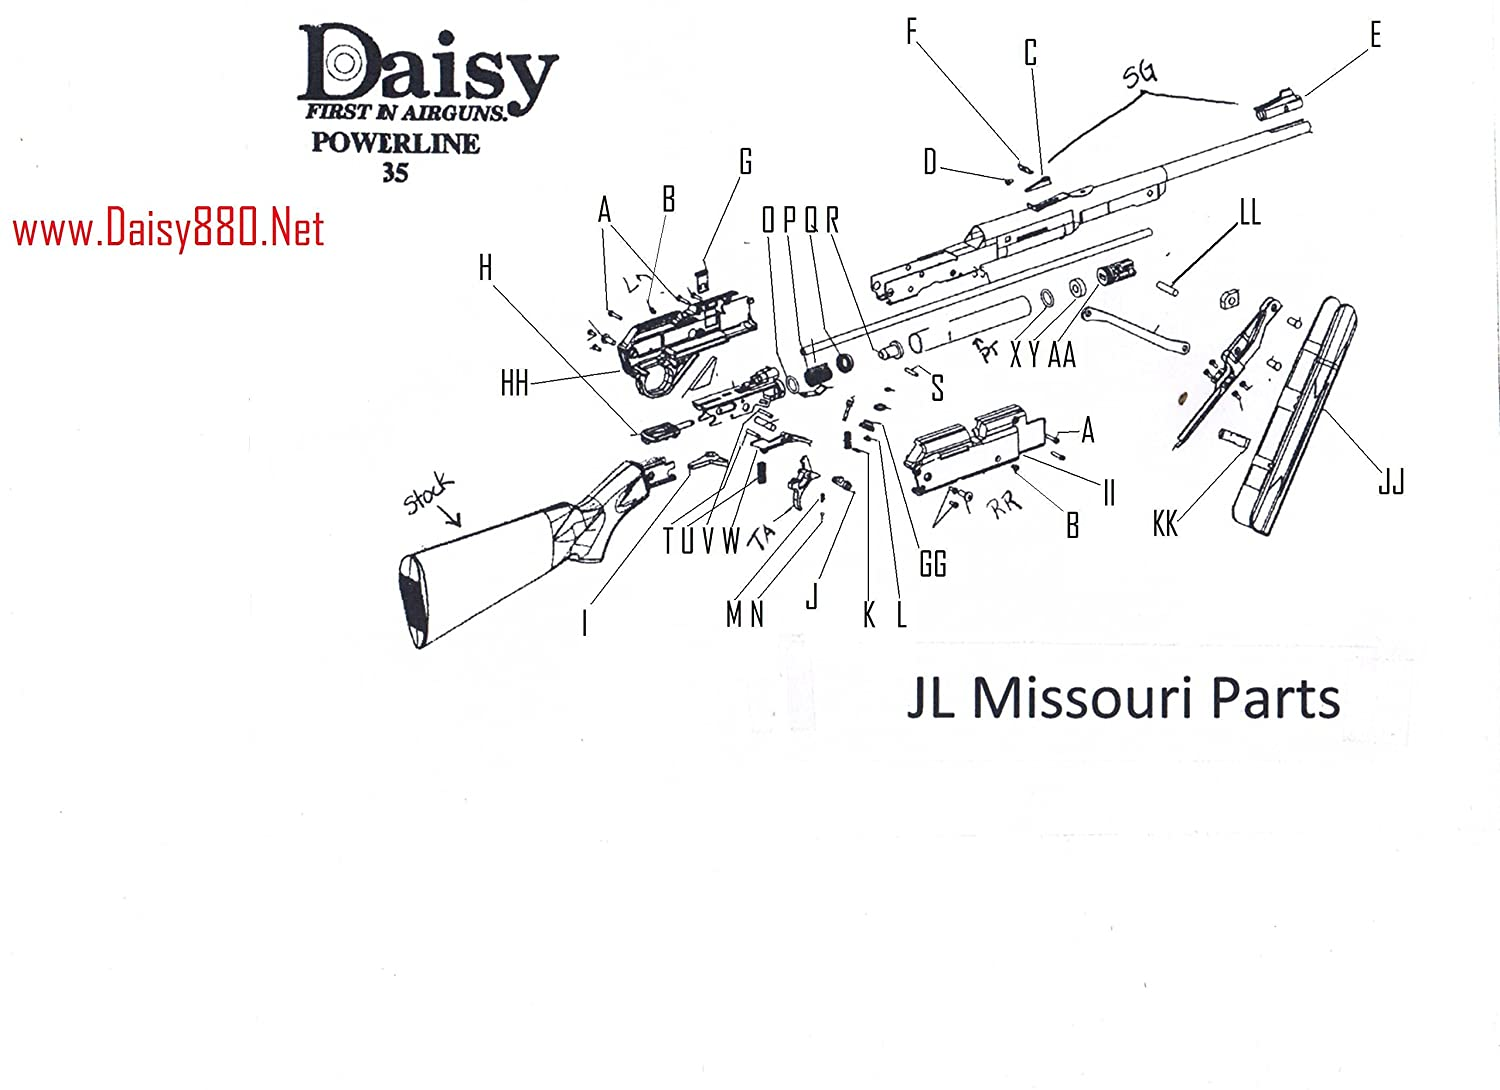 daisy model 880 parts diagram